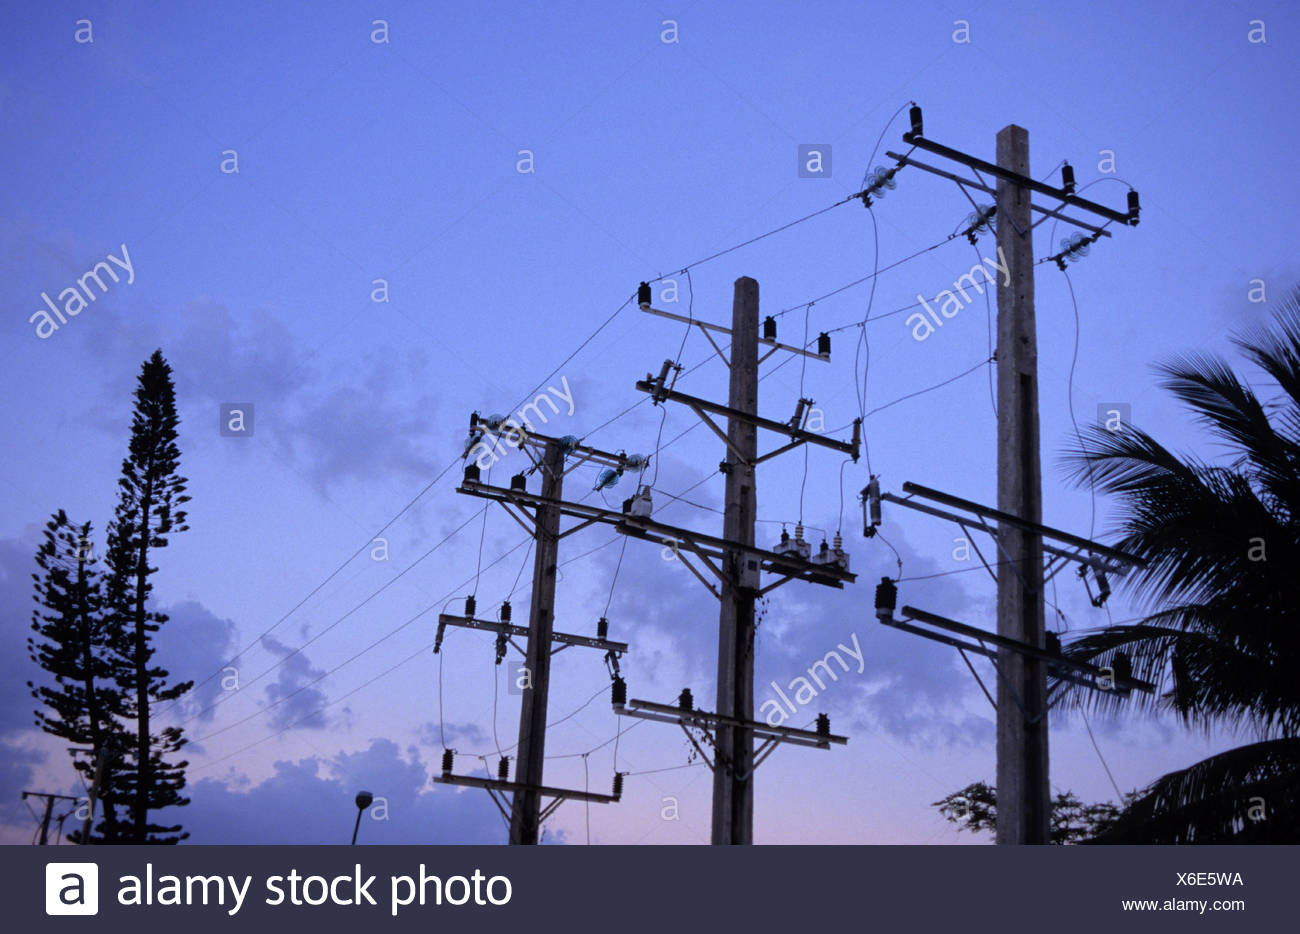 Power poles in the blue hour - Stock Image